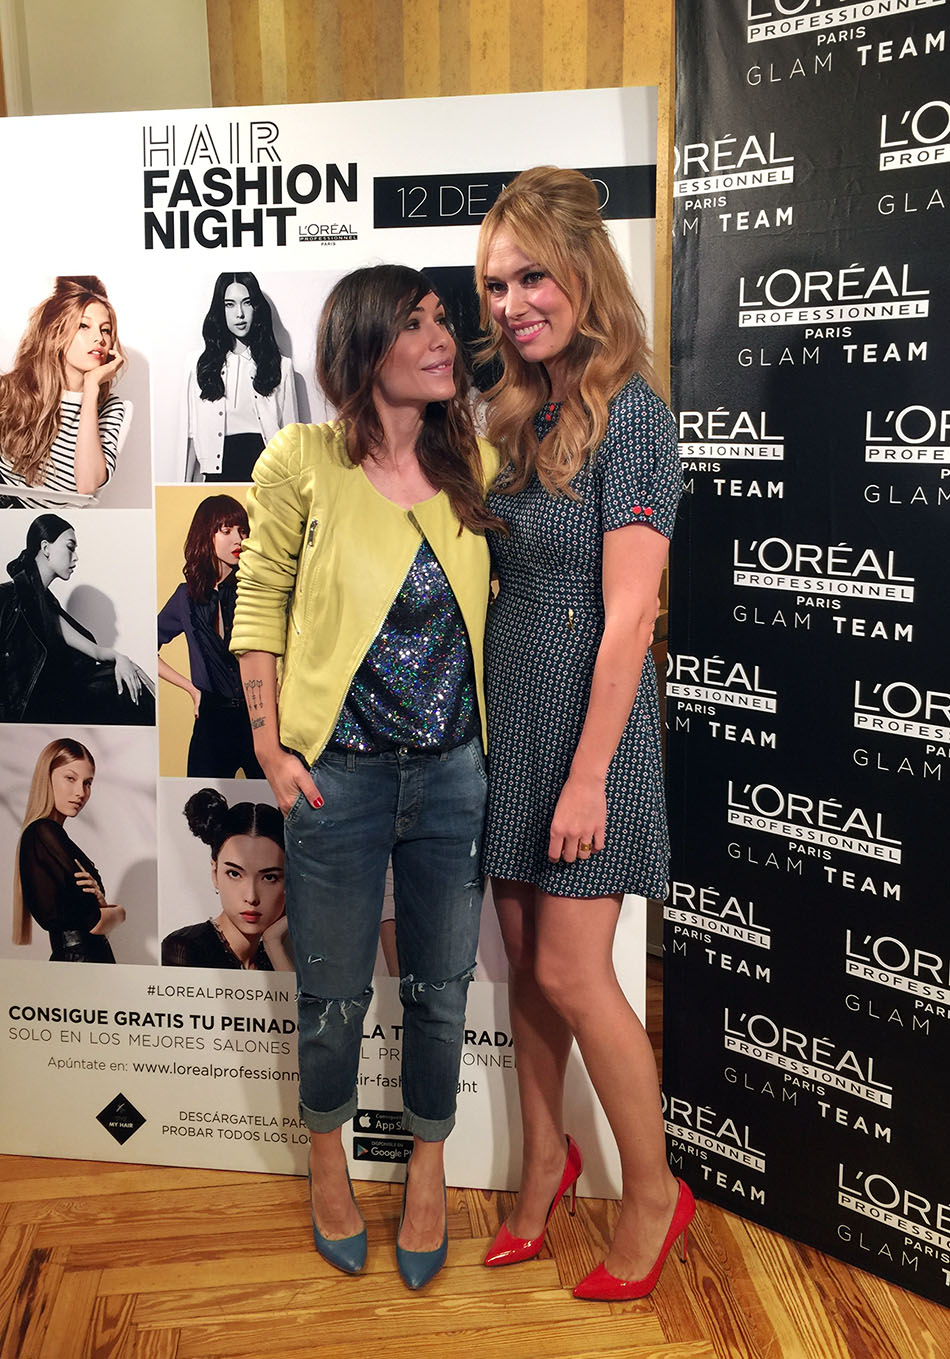 bárbara Crespo y patricia conde. hair Fashion Night